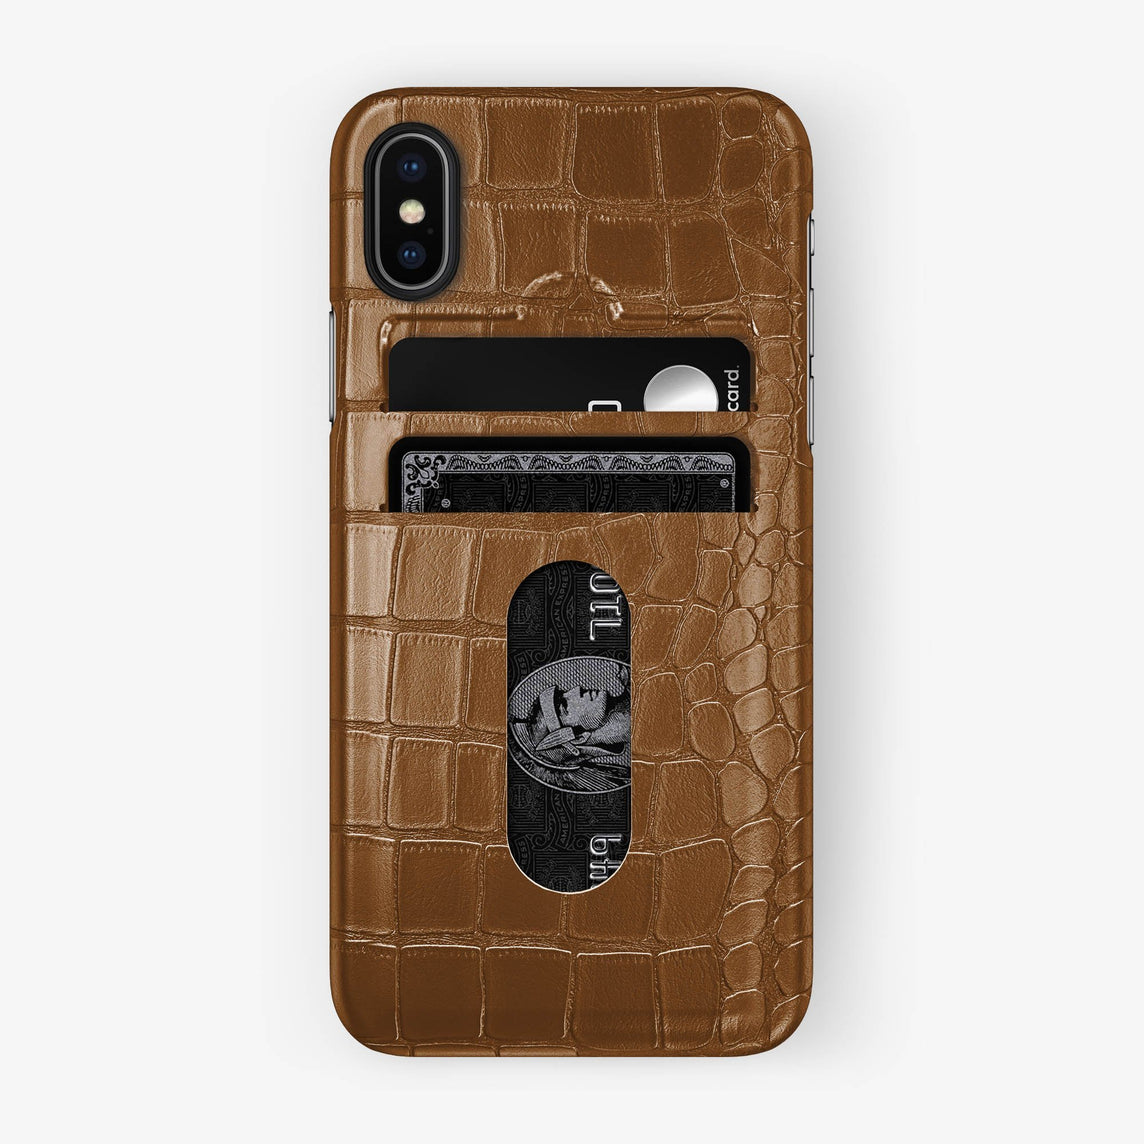 Alligator Card Holder Case iPhone X/Xs | Cognac - Black with-personalization